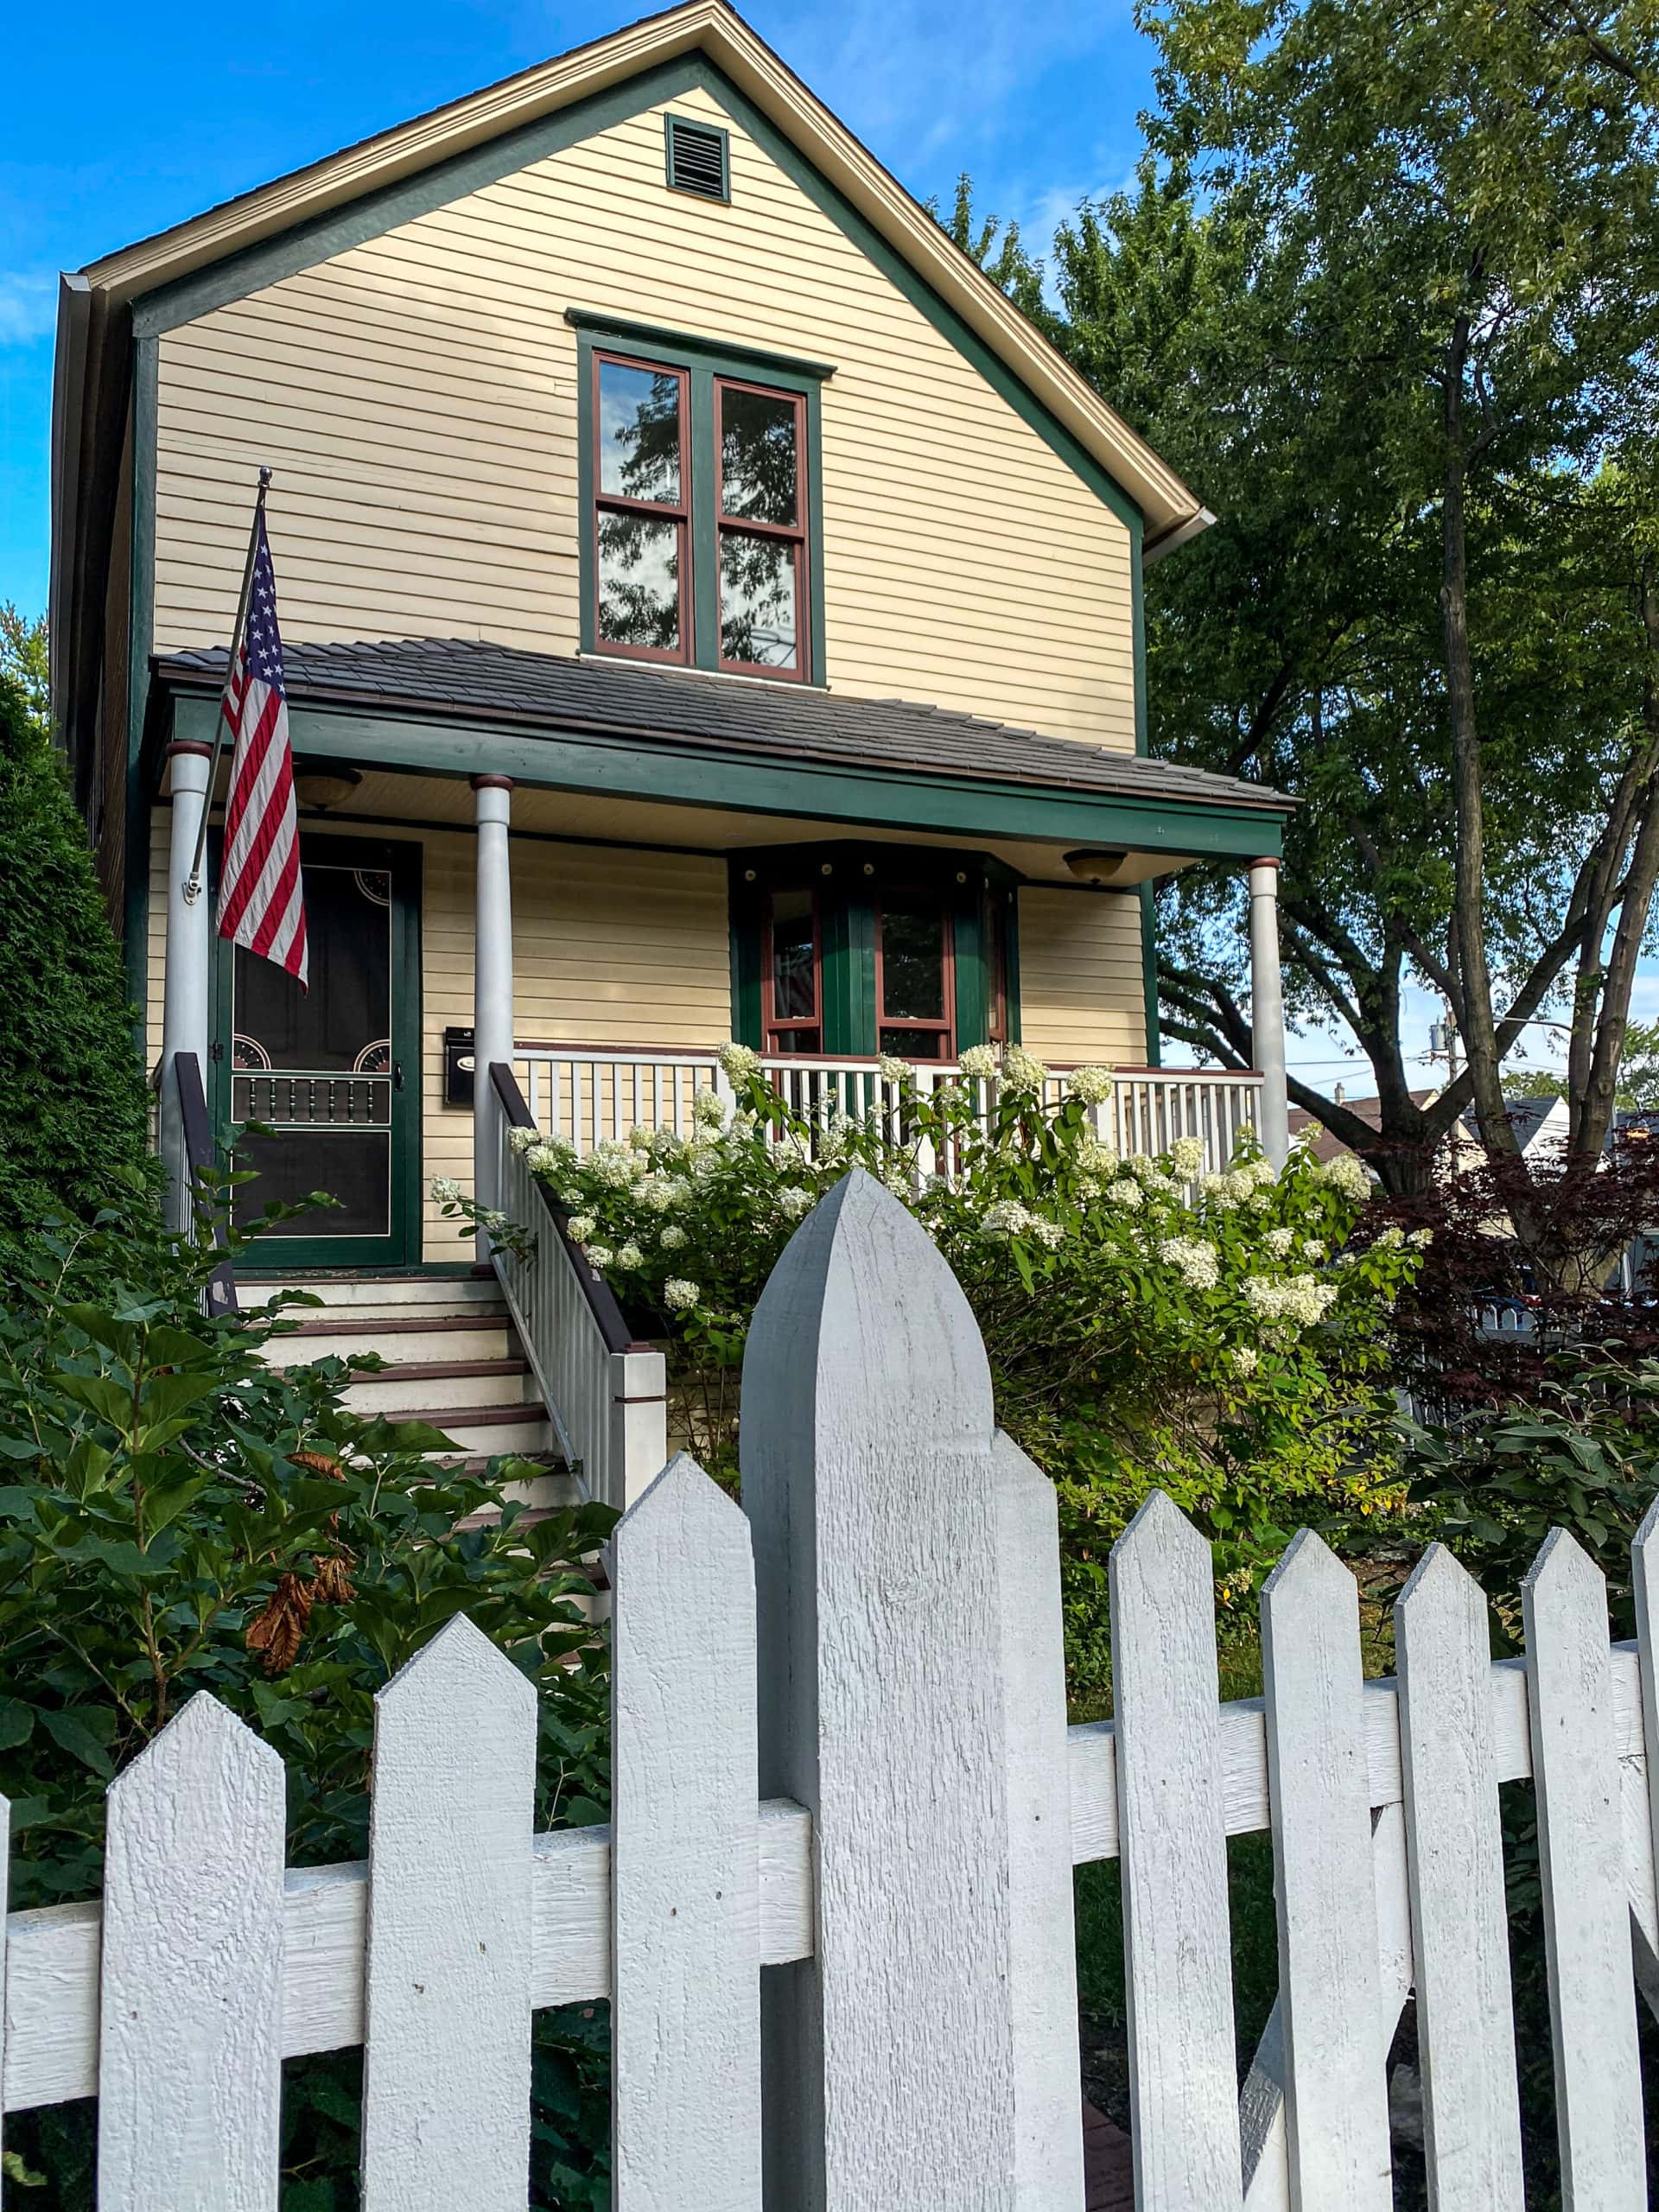 Walt Disney Birthplace house in Chicago, Illinois